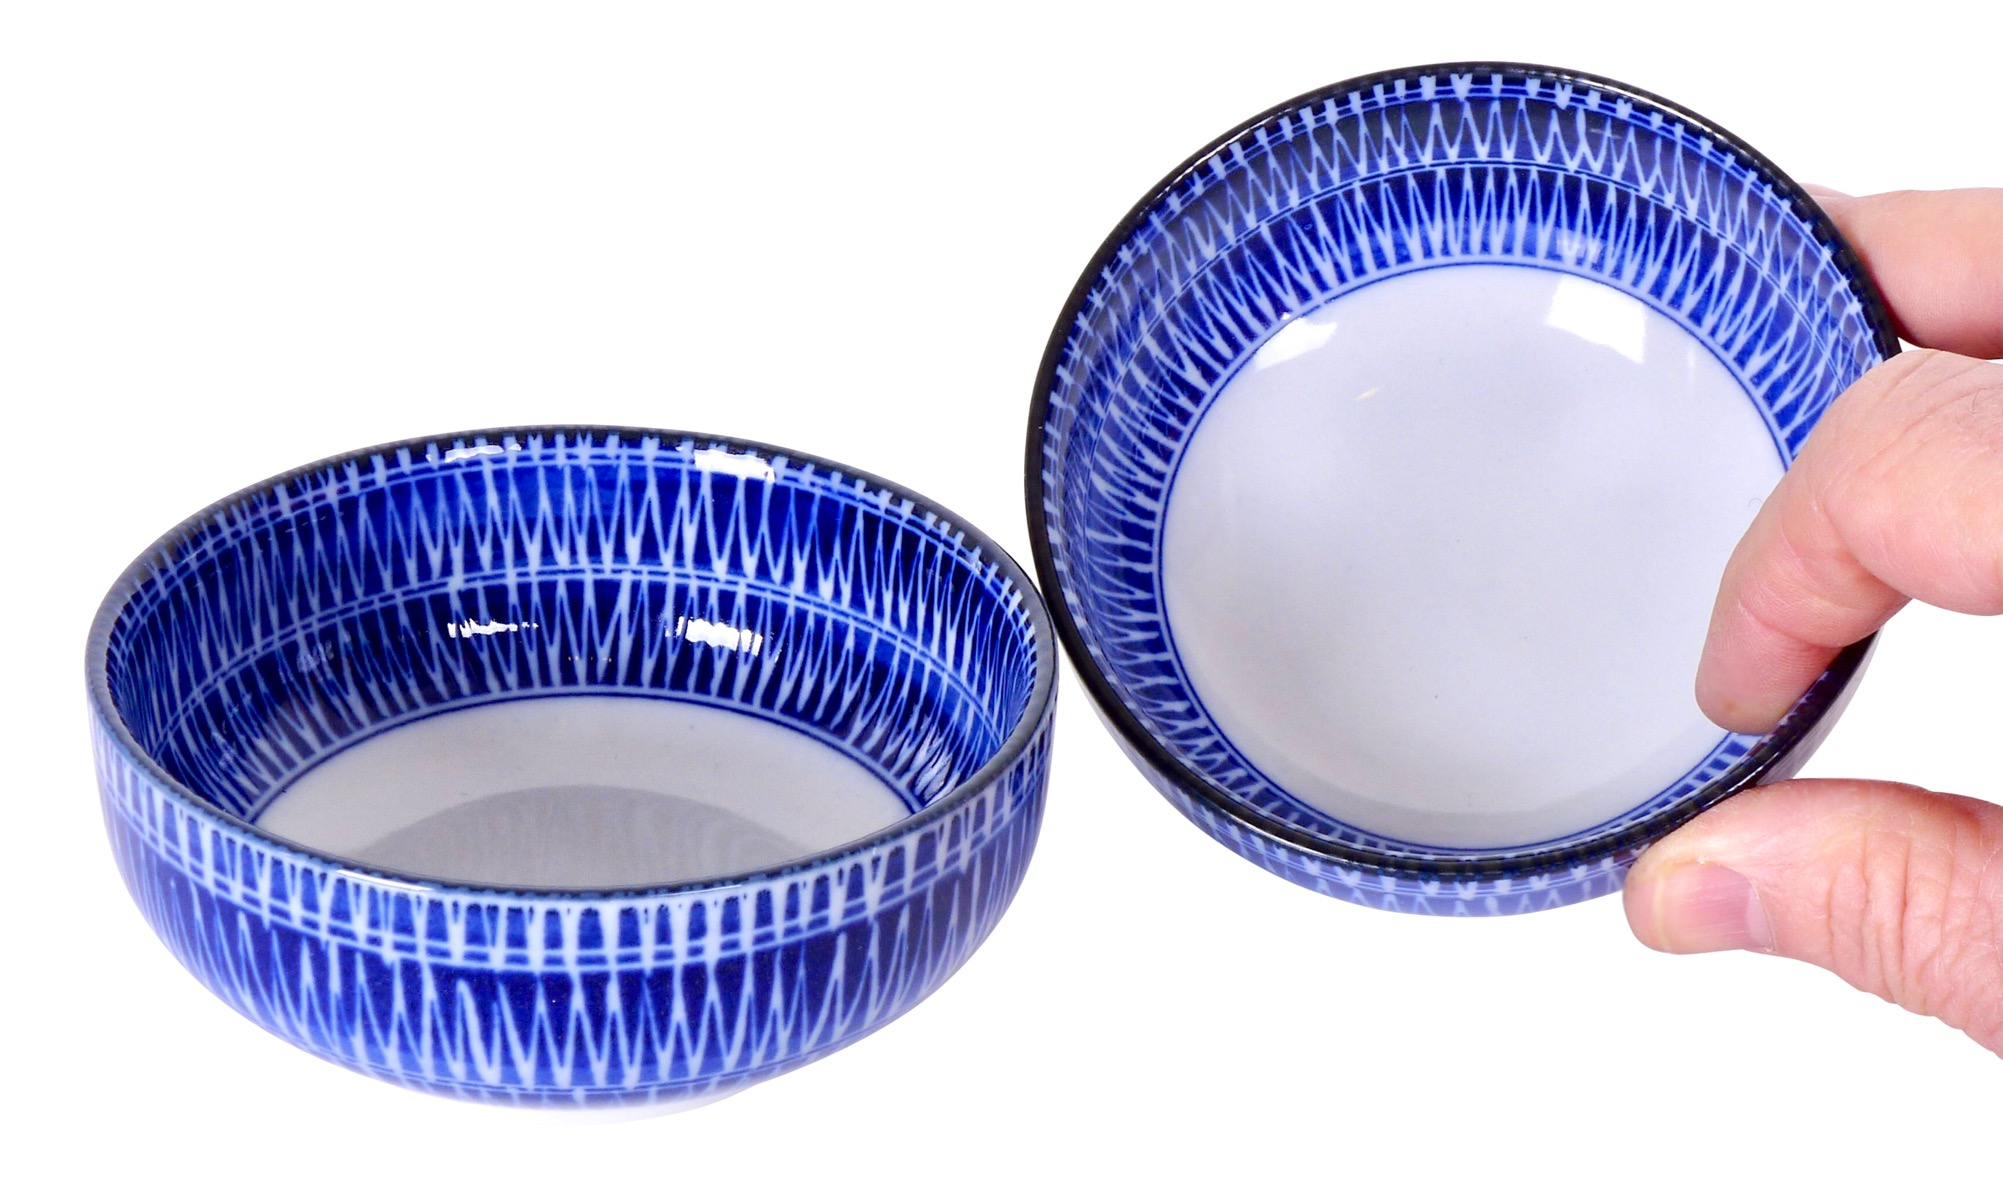 Image of Porcelain Bowls 4-Inch, Blue and White ZigZag Stripes.